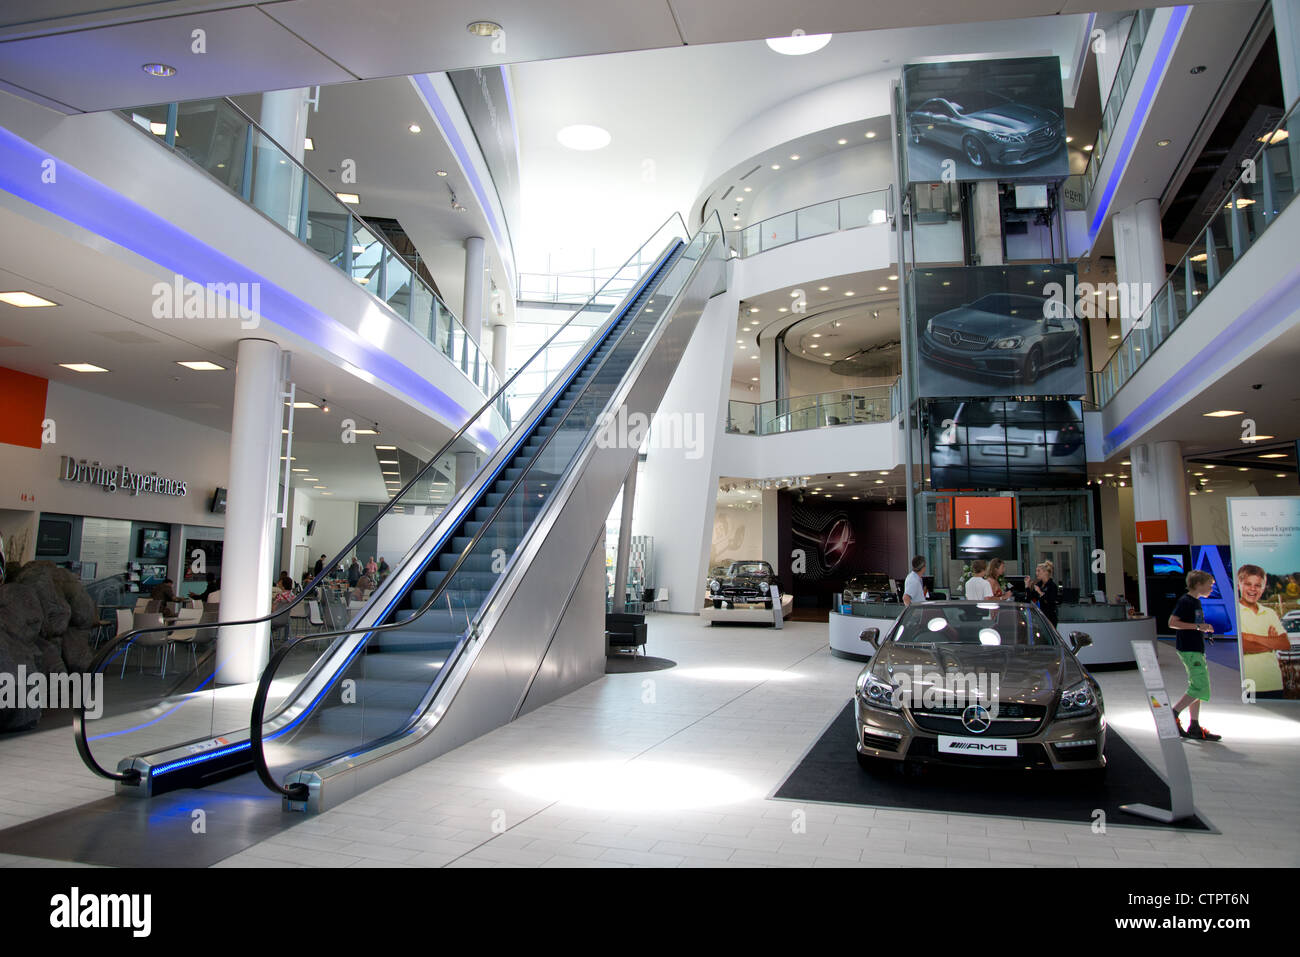 mercedes-benz world, brooklands, weybridge, surrey, england, united